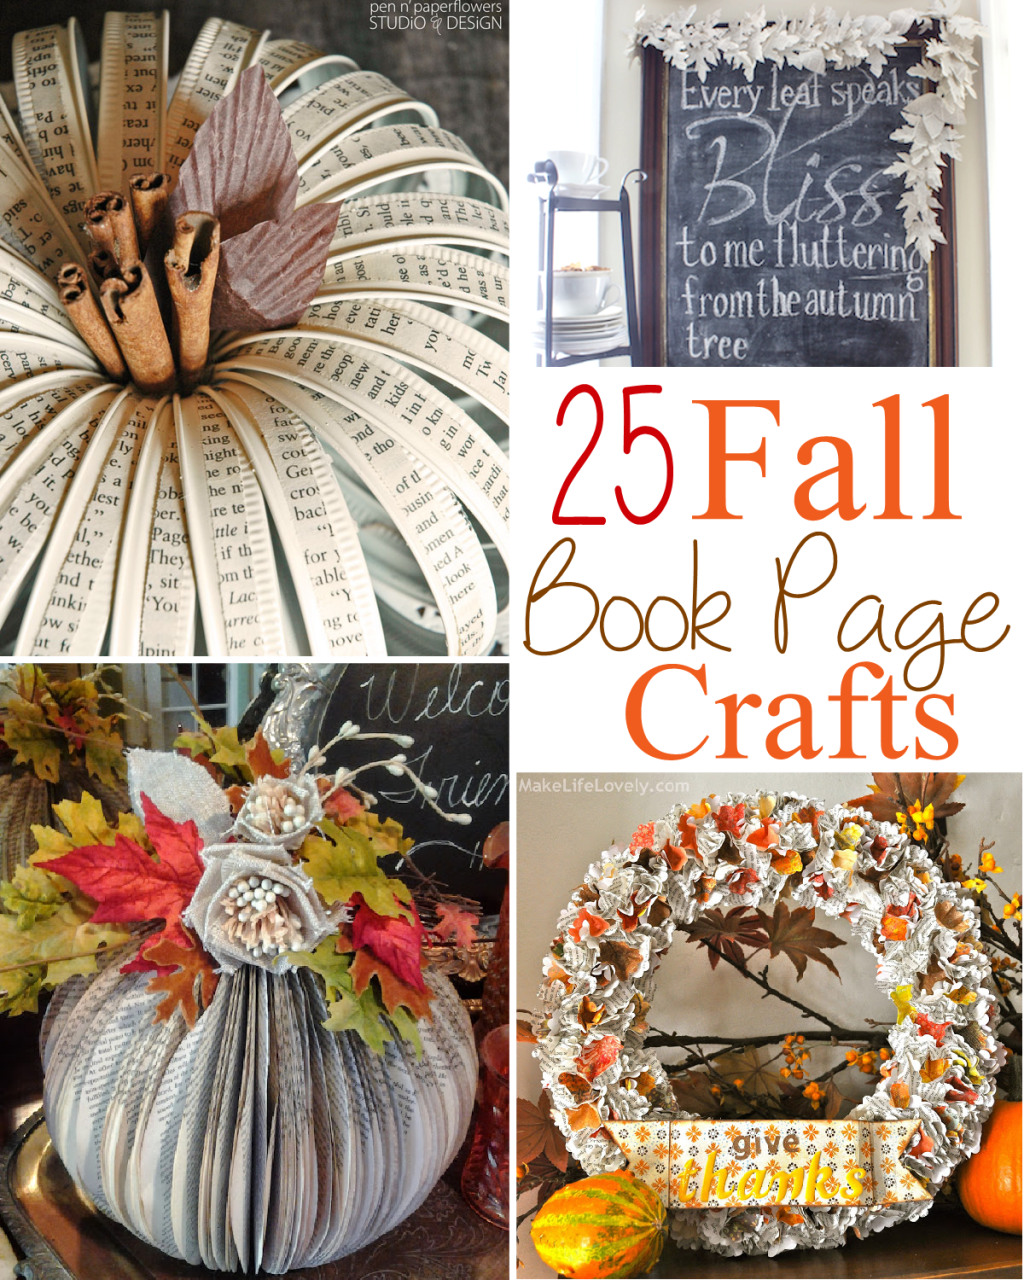 Book Cover Craft Books : Fall book page crafts the scrap shoppe